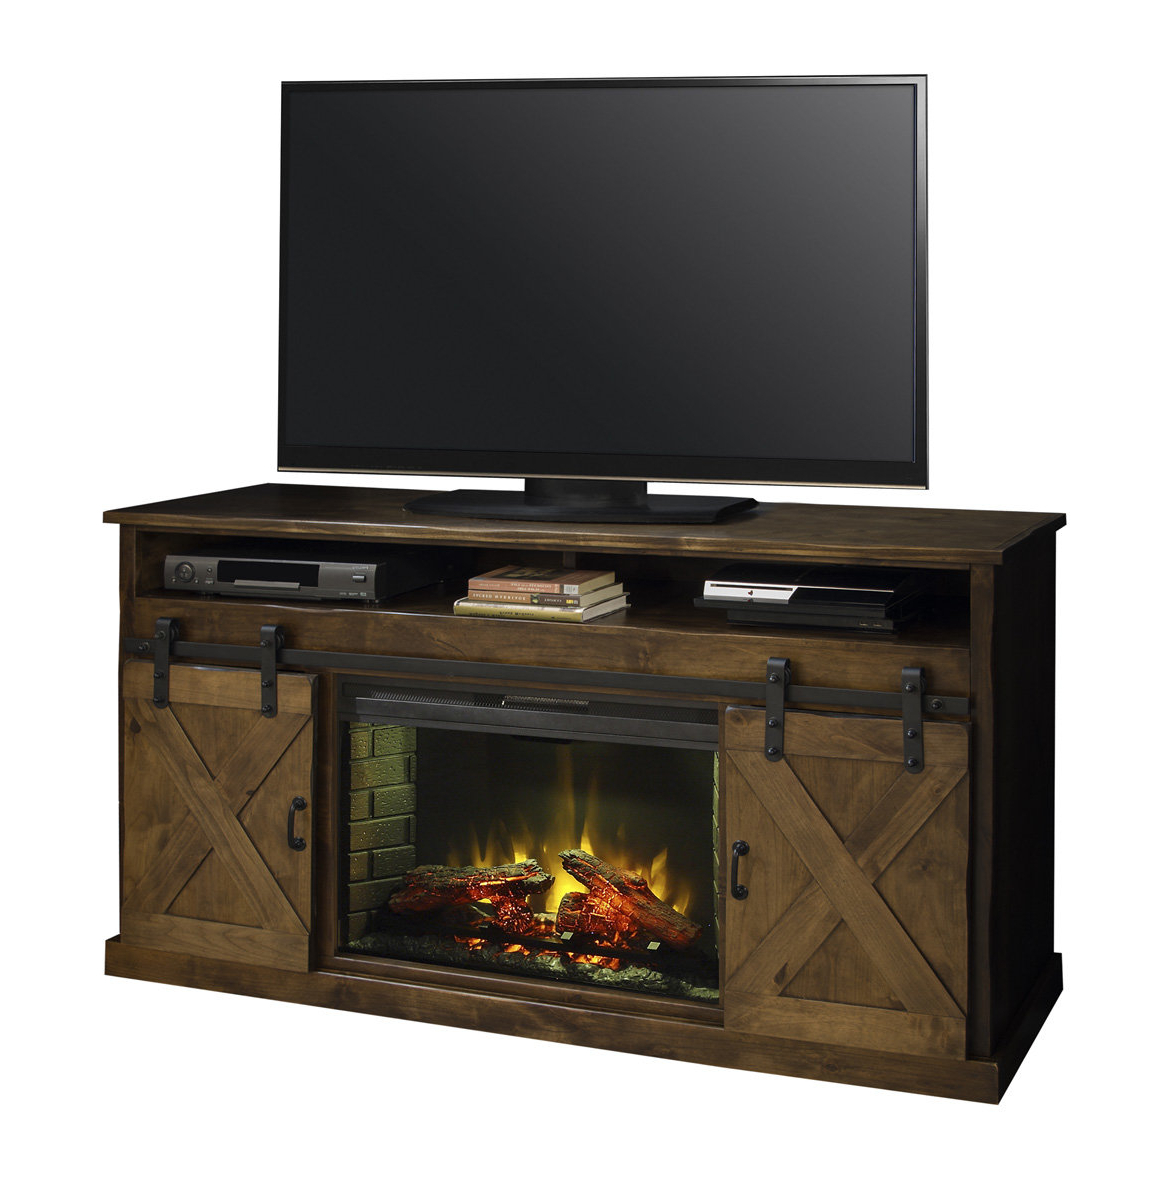 "Most Recent Loon Peak Pullman Tv Stand For Tvs Up To 65"" With Electric Fireplace In Vista 60 Inch Tv Stands (Gallery 11 of 20)"